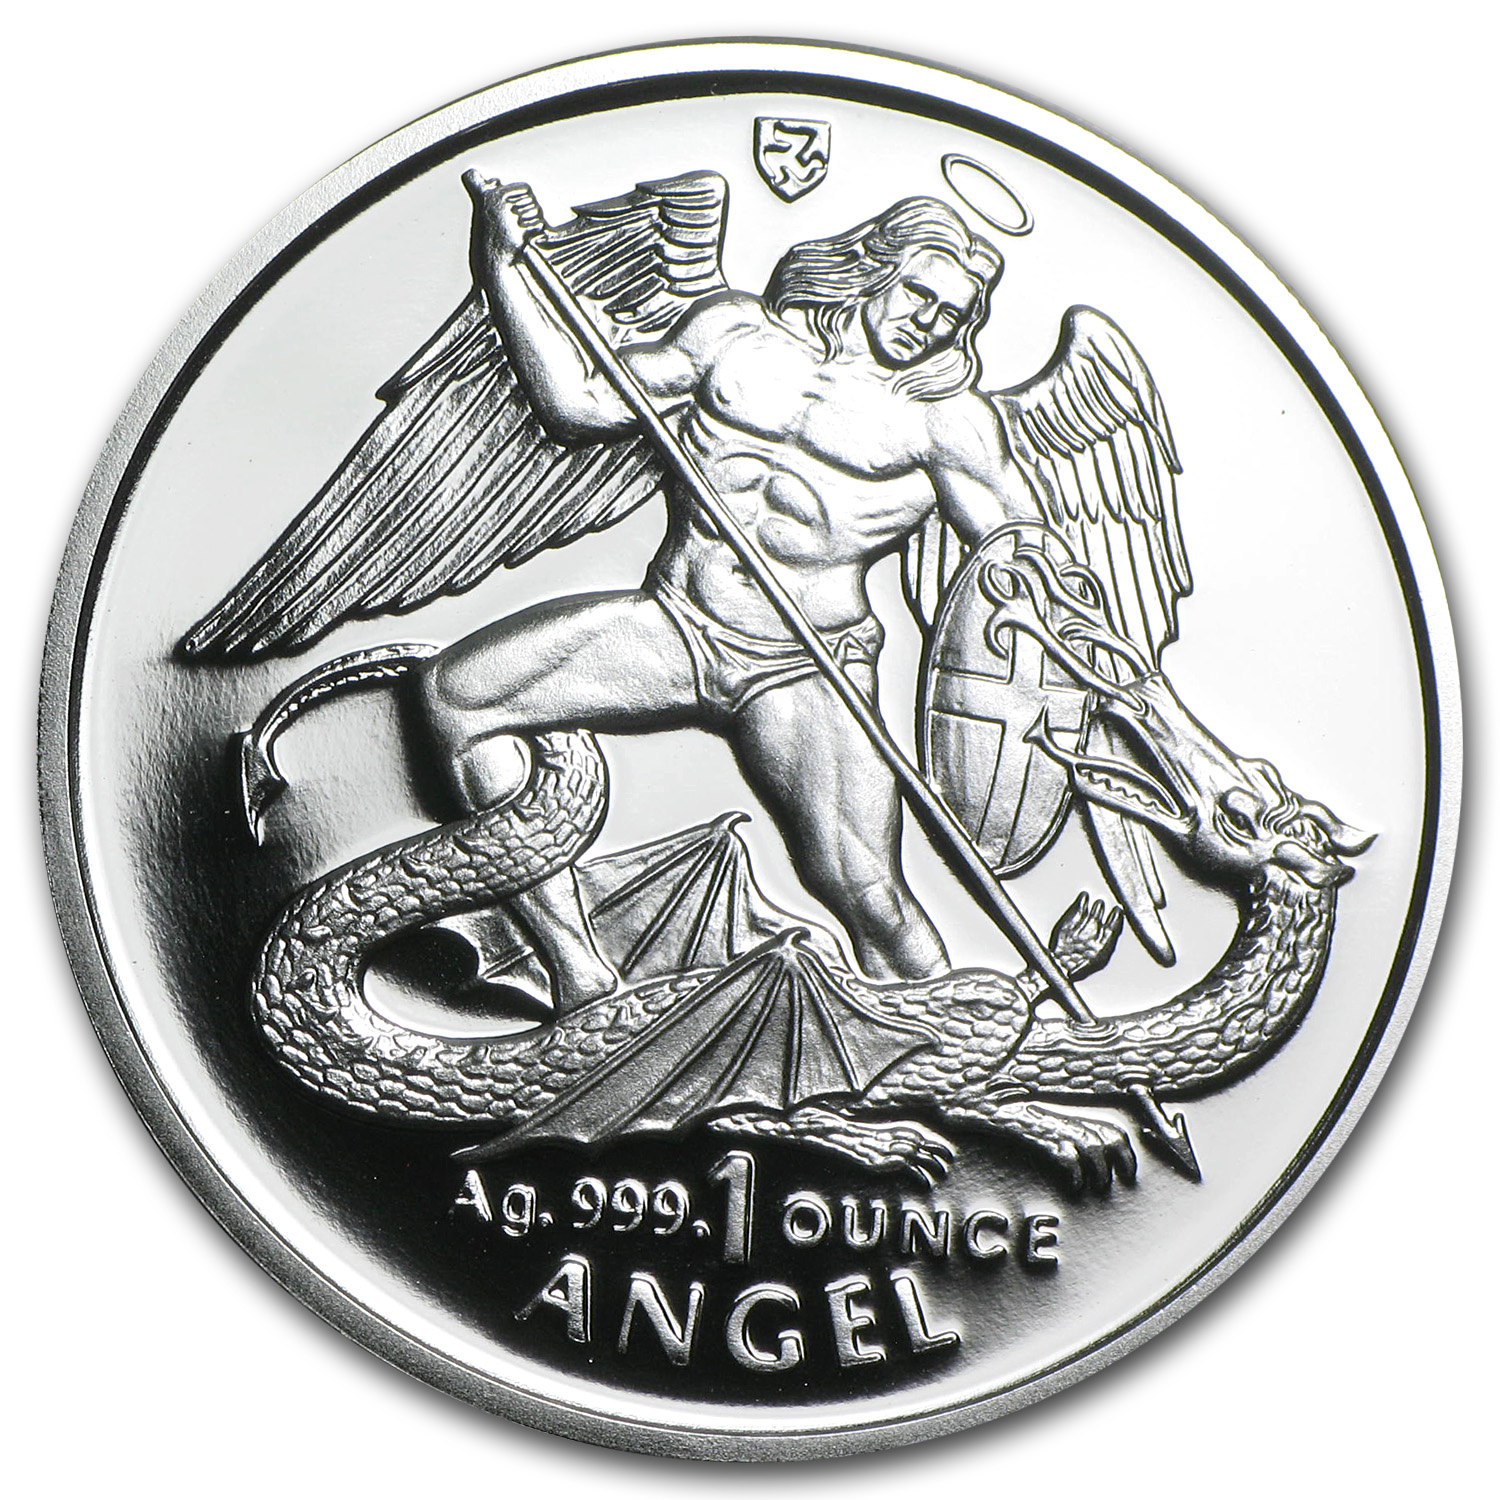 Isle of Man 1995 1 oz Silver Proof Angel Coin